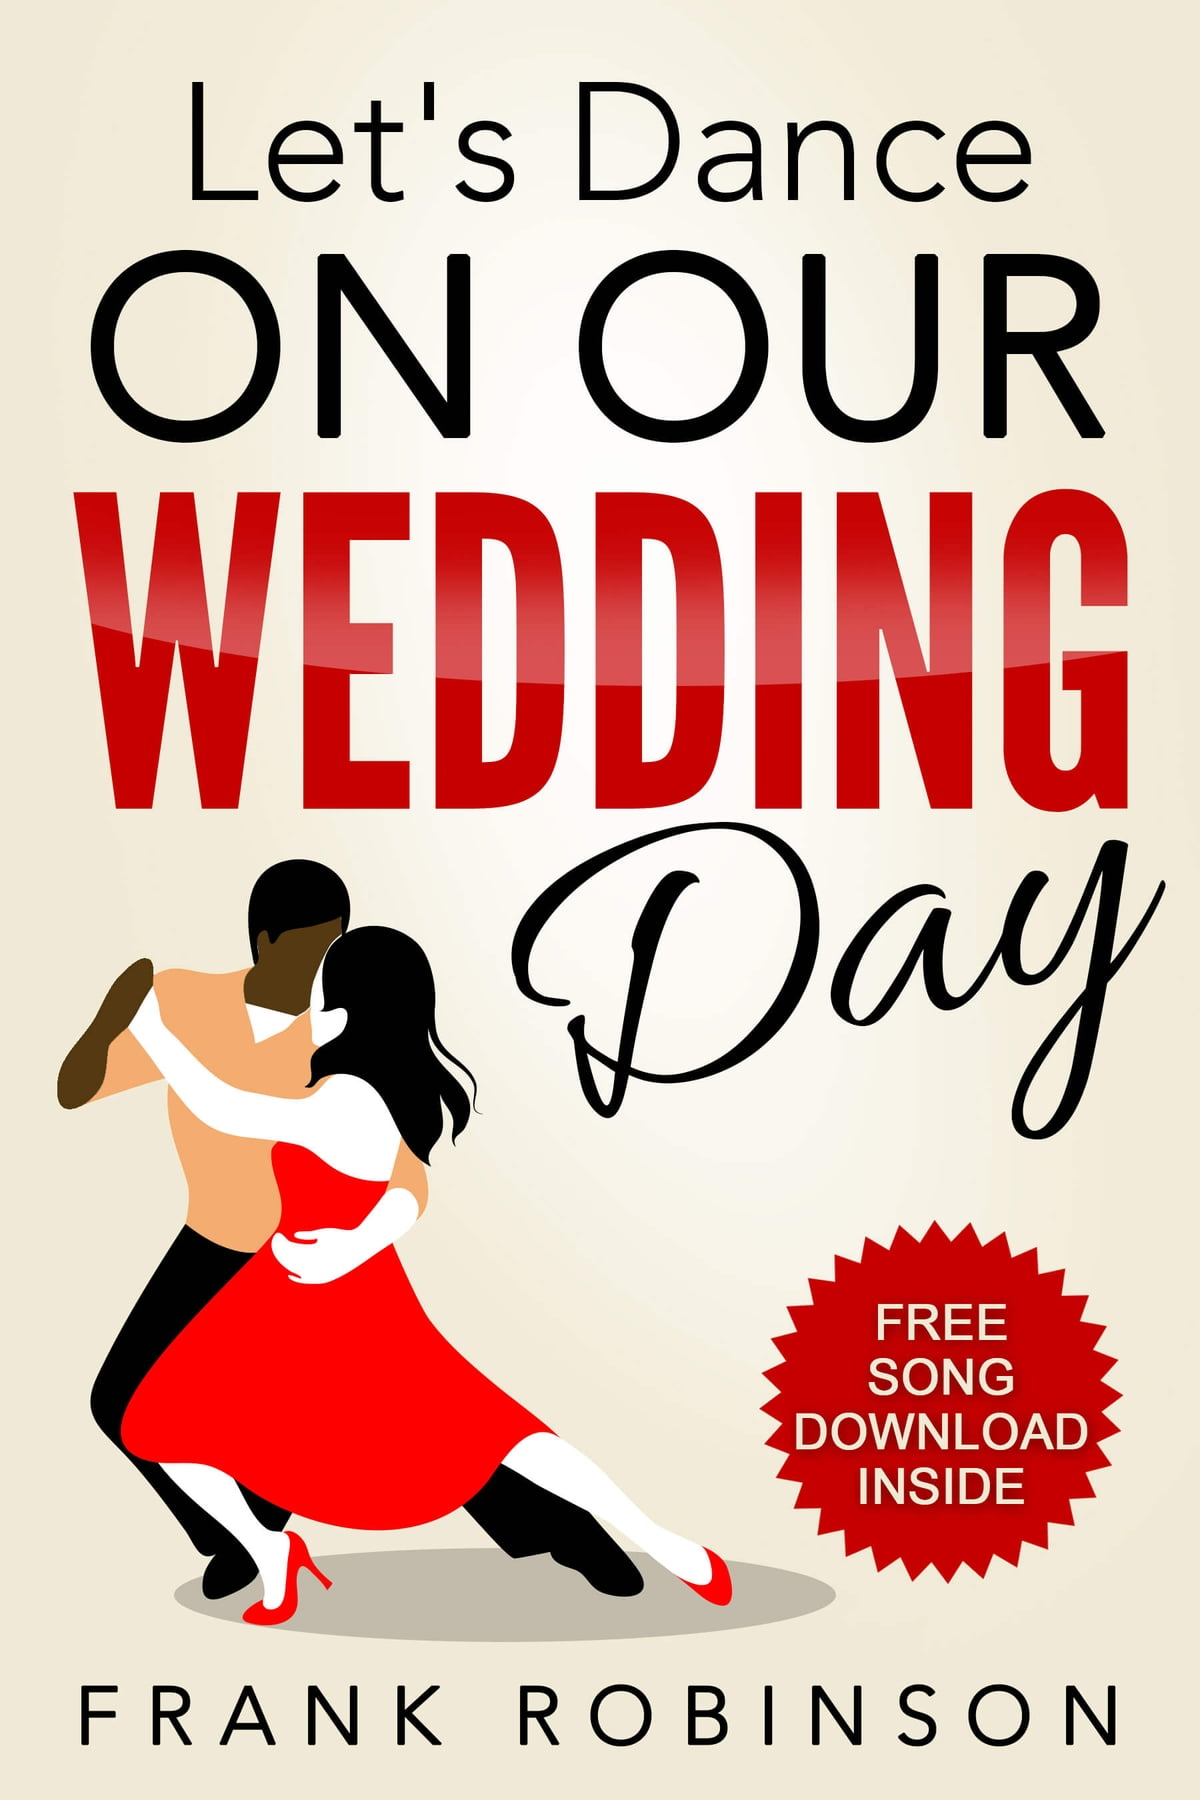 Let's Dance On Our Wedding Day Ebook By Frank Robinson  1230001230543   Kobo